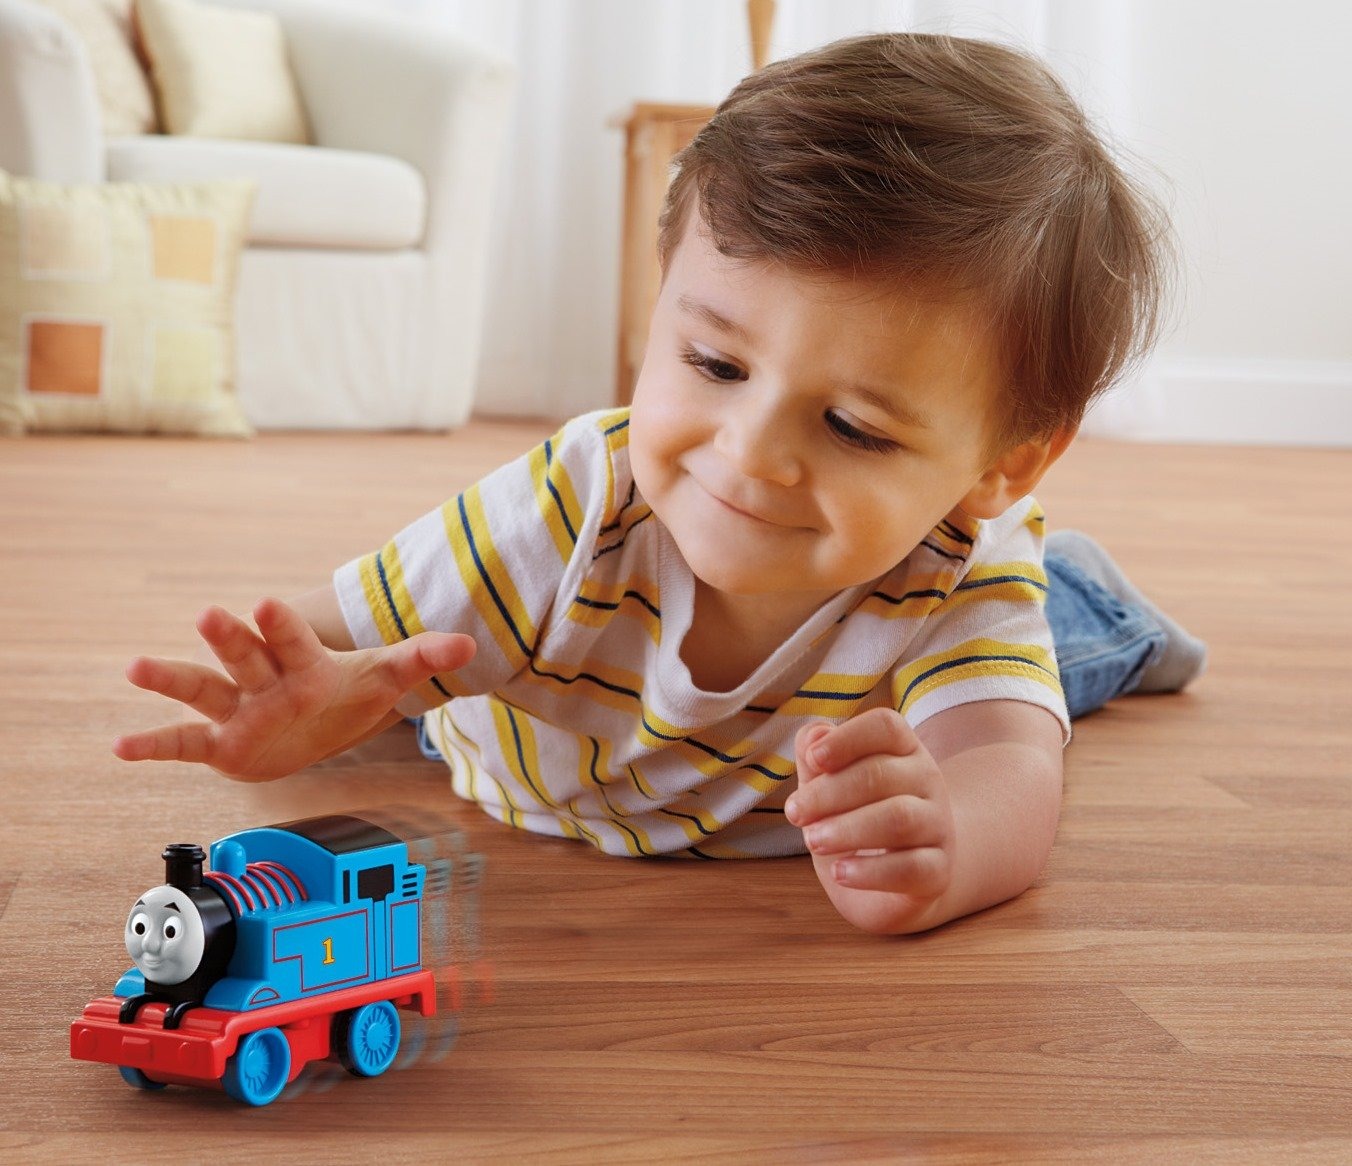 Amazon.com: Thomas & Friends Fisher-Price My First, Pull \'n Spin ...